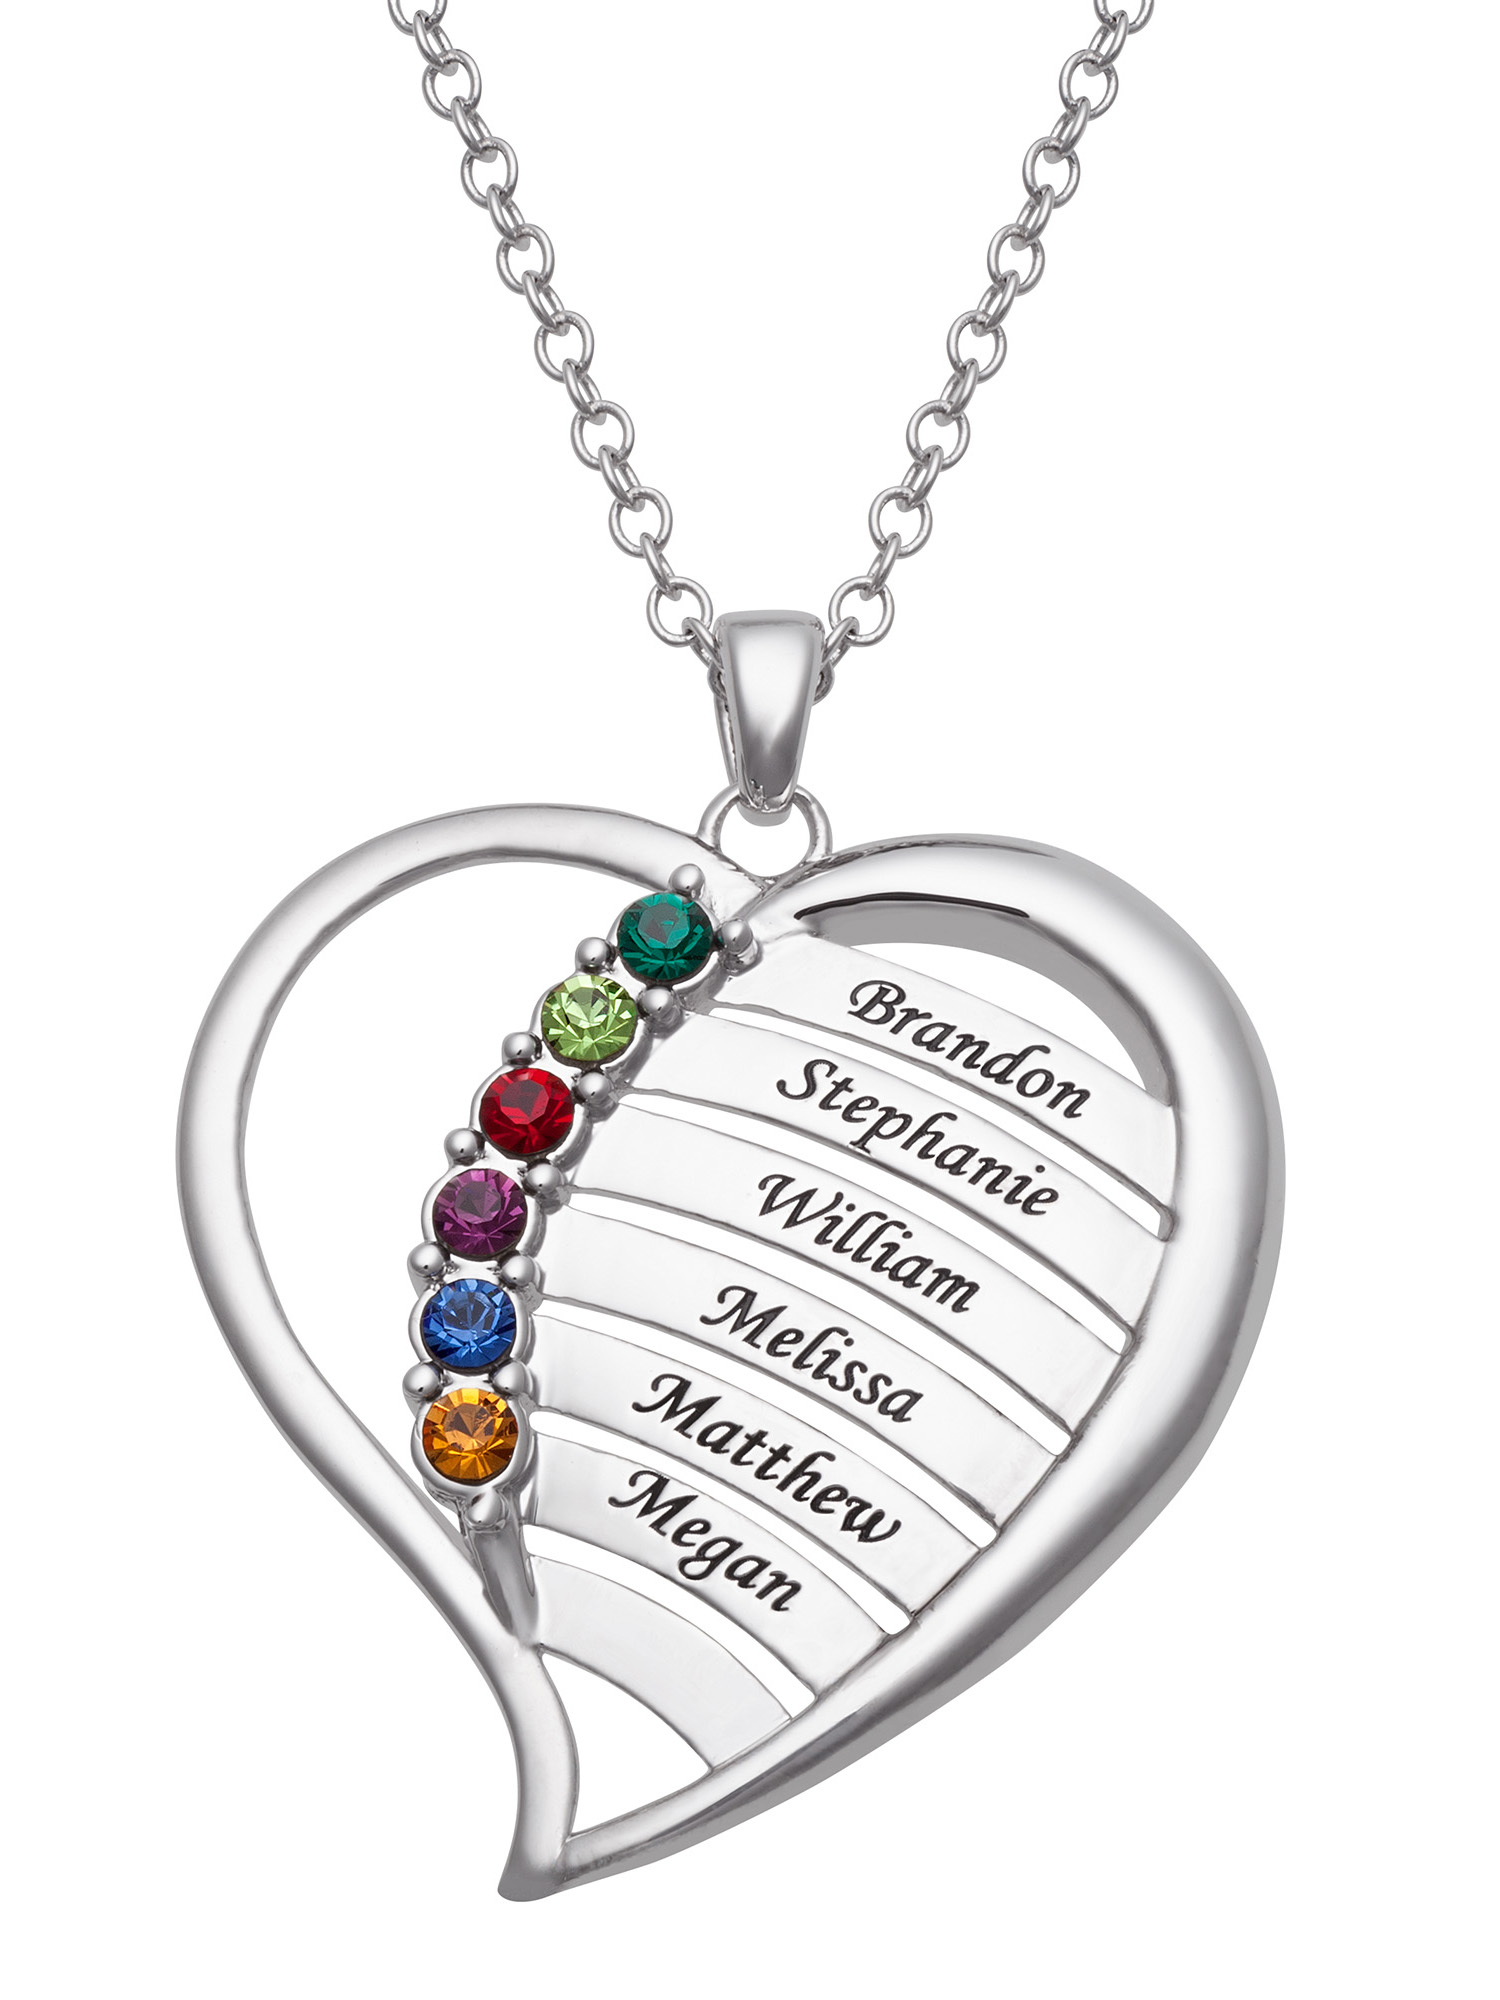 Family Jewelry Personalized Mother's Family Rhodium-Plated or Gold-Plated Birthstone and Names Heart Necklace, 18""